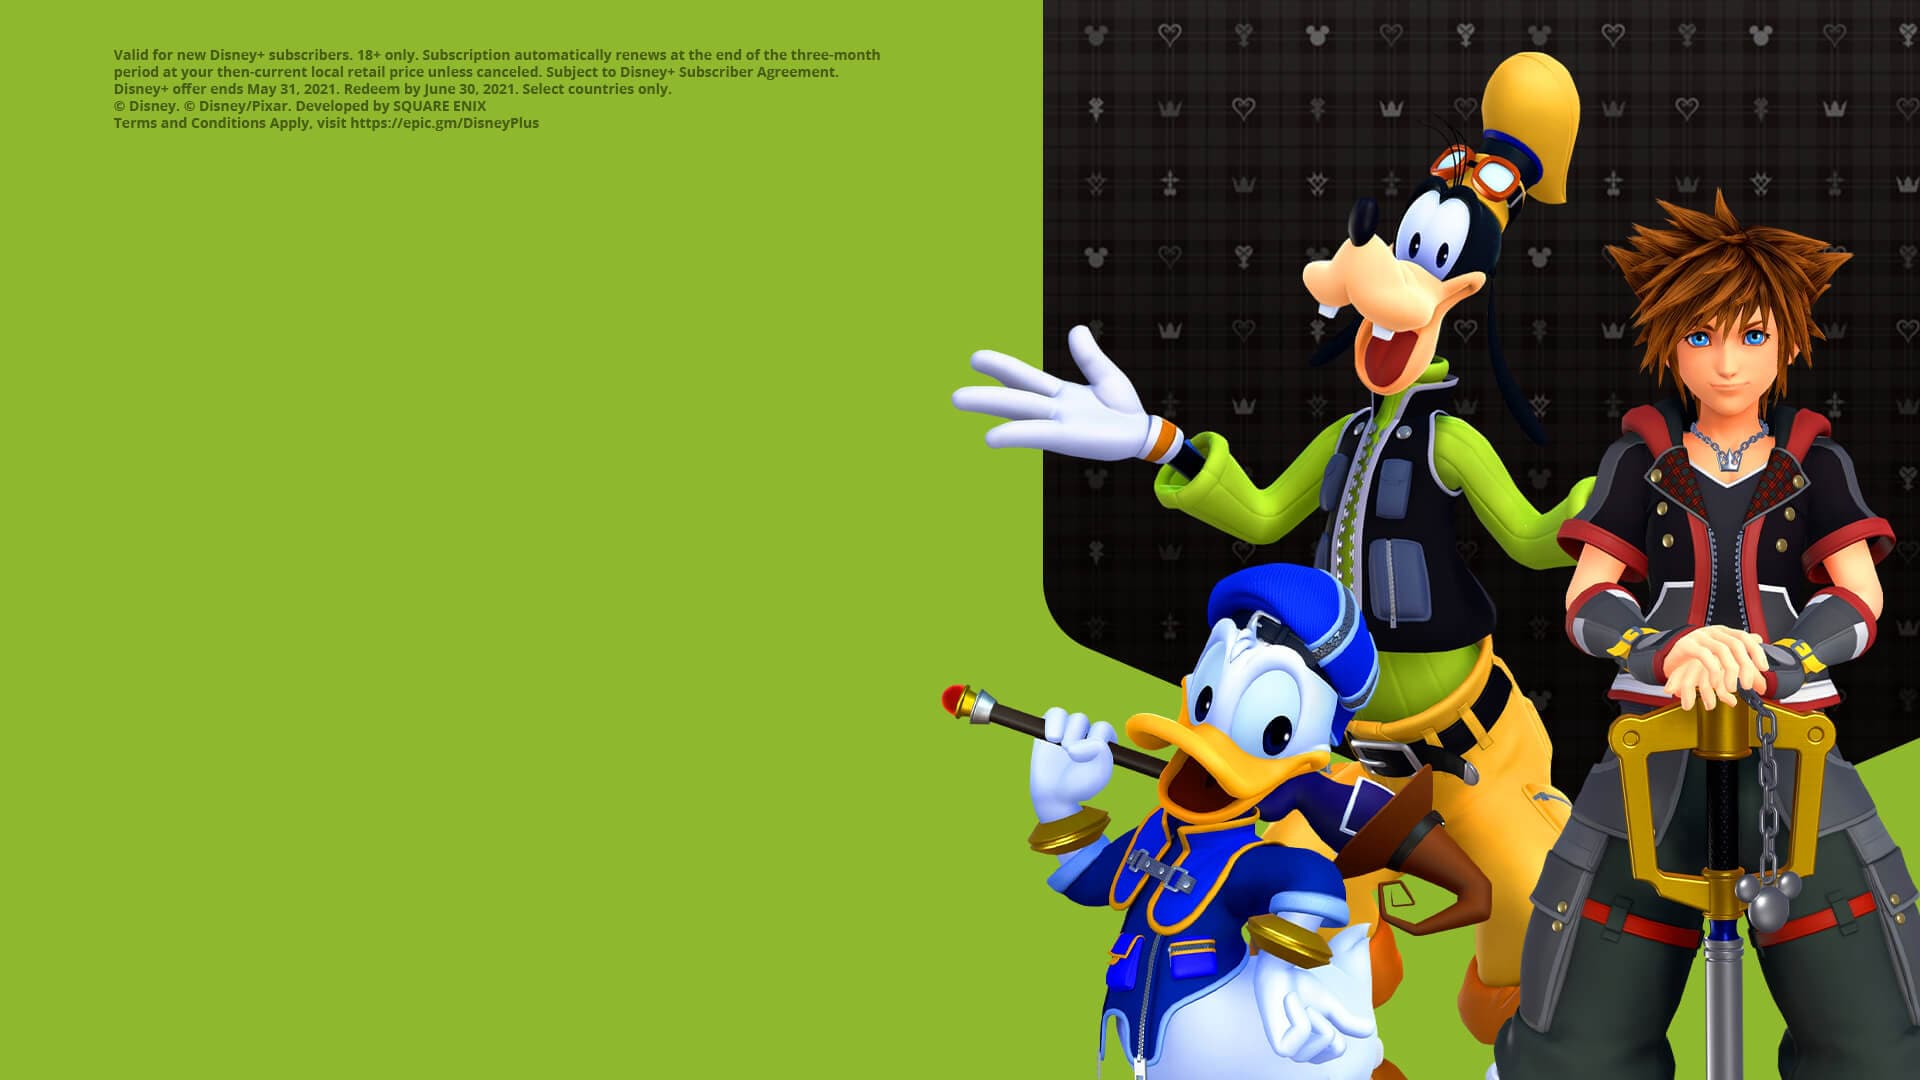 Get 3 months of Disney+ on Epic Games Store when you buy Kingdom Hearts III on PC